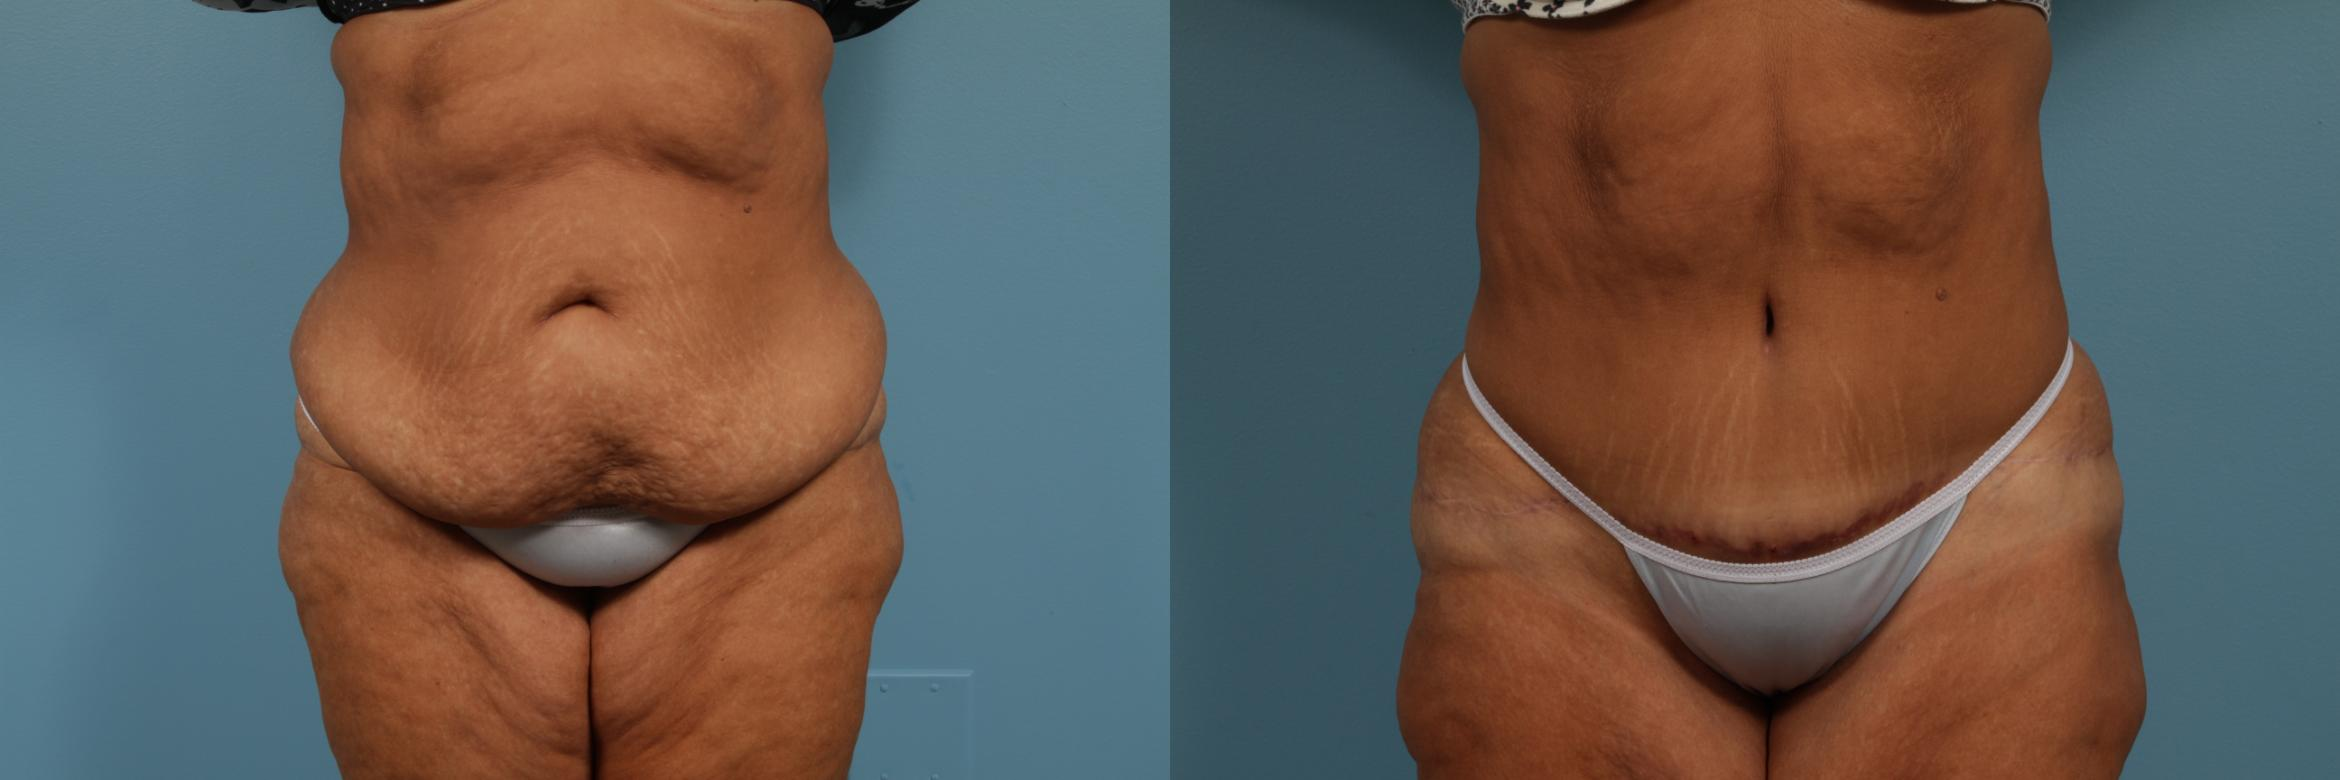 Tummy Tuck Case 297 Before & After View #1 | Chicago, IL | TLKM Plastic Surgery